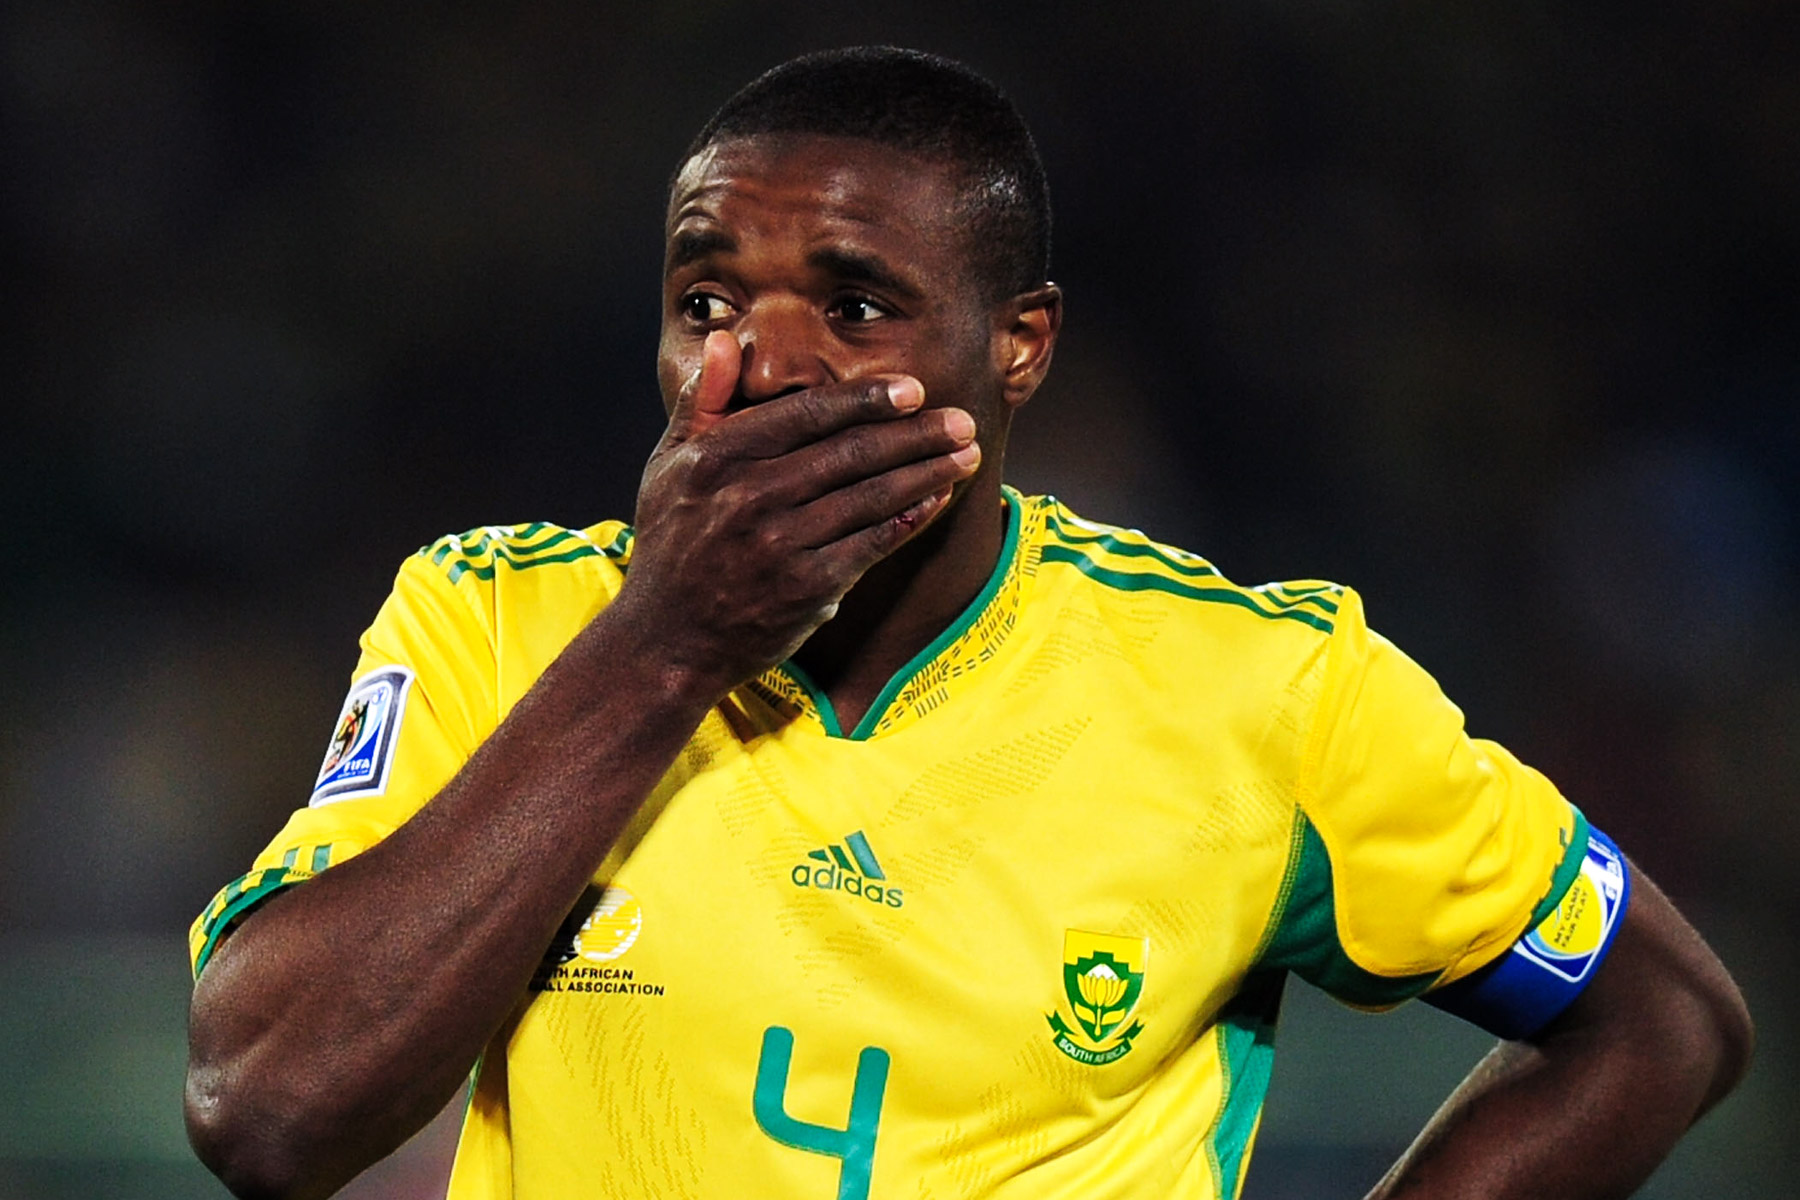 16 June 2010: Aaron Mokoena during Bafana's 2010 World Cup match against Uruguay at the Loftus Versfeld Stadium in Pretoria. (Photograph by Clive Mason/ Getty Images)